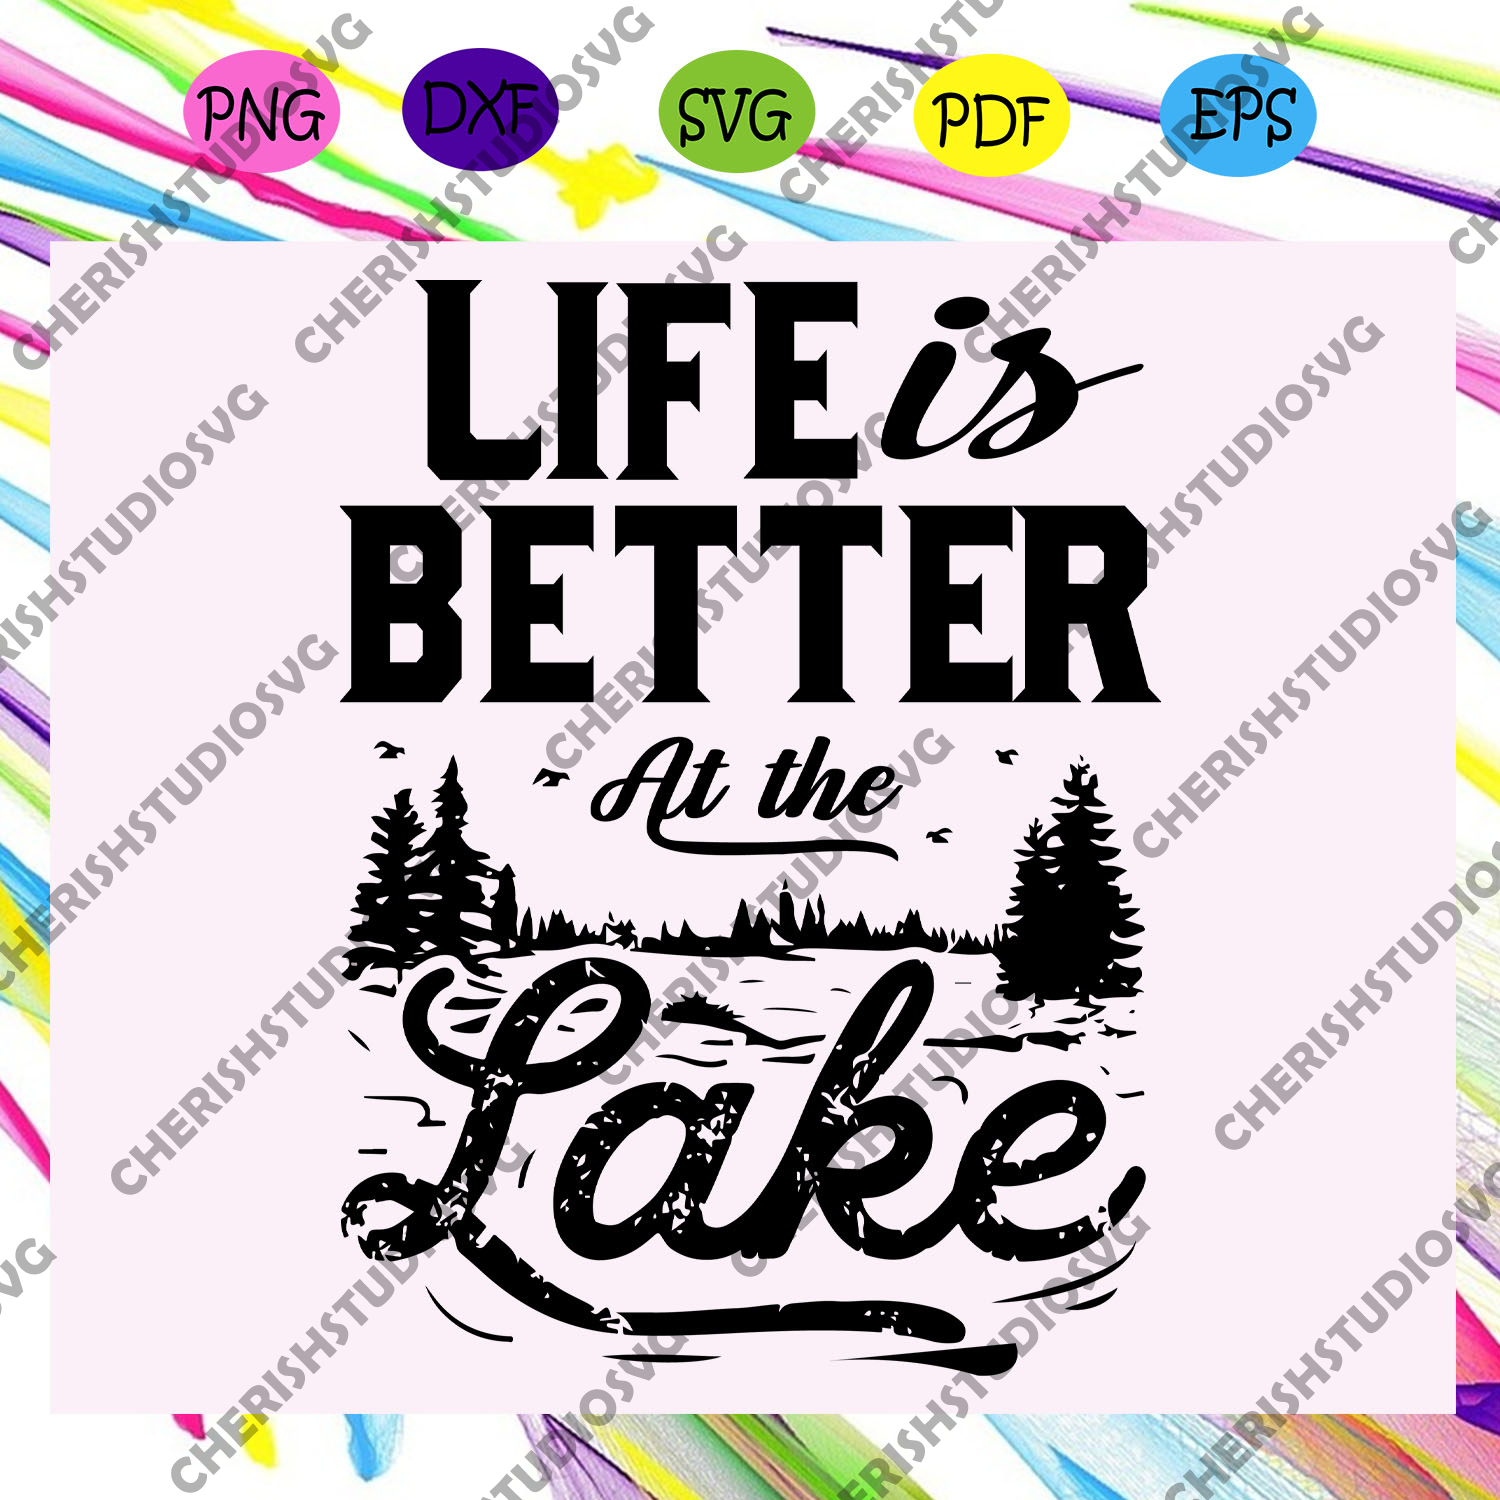 Life is better at the lake , Lake House Cut File, Summer Vacation, Lake Cabin, Lake Quote Saying,trending svg Files For Silhouette, Files For Cricut, SVG, DXF, EPS, PNG, Instant Download